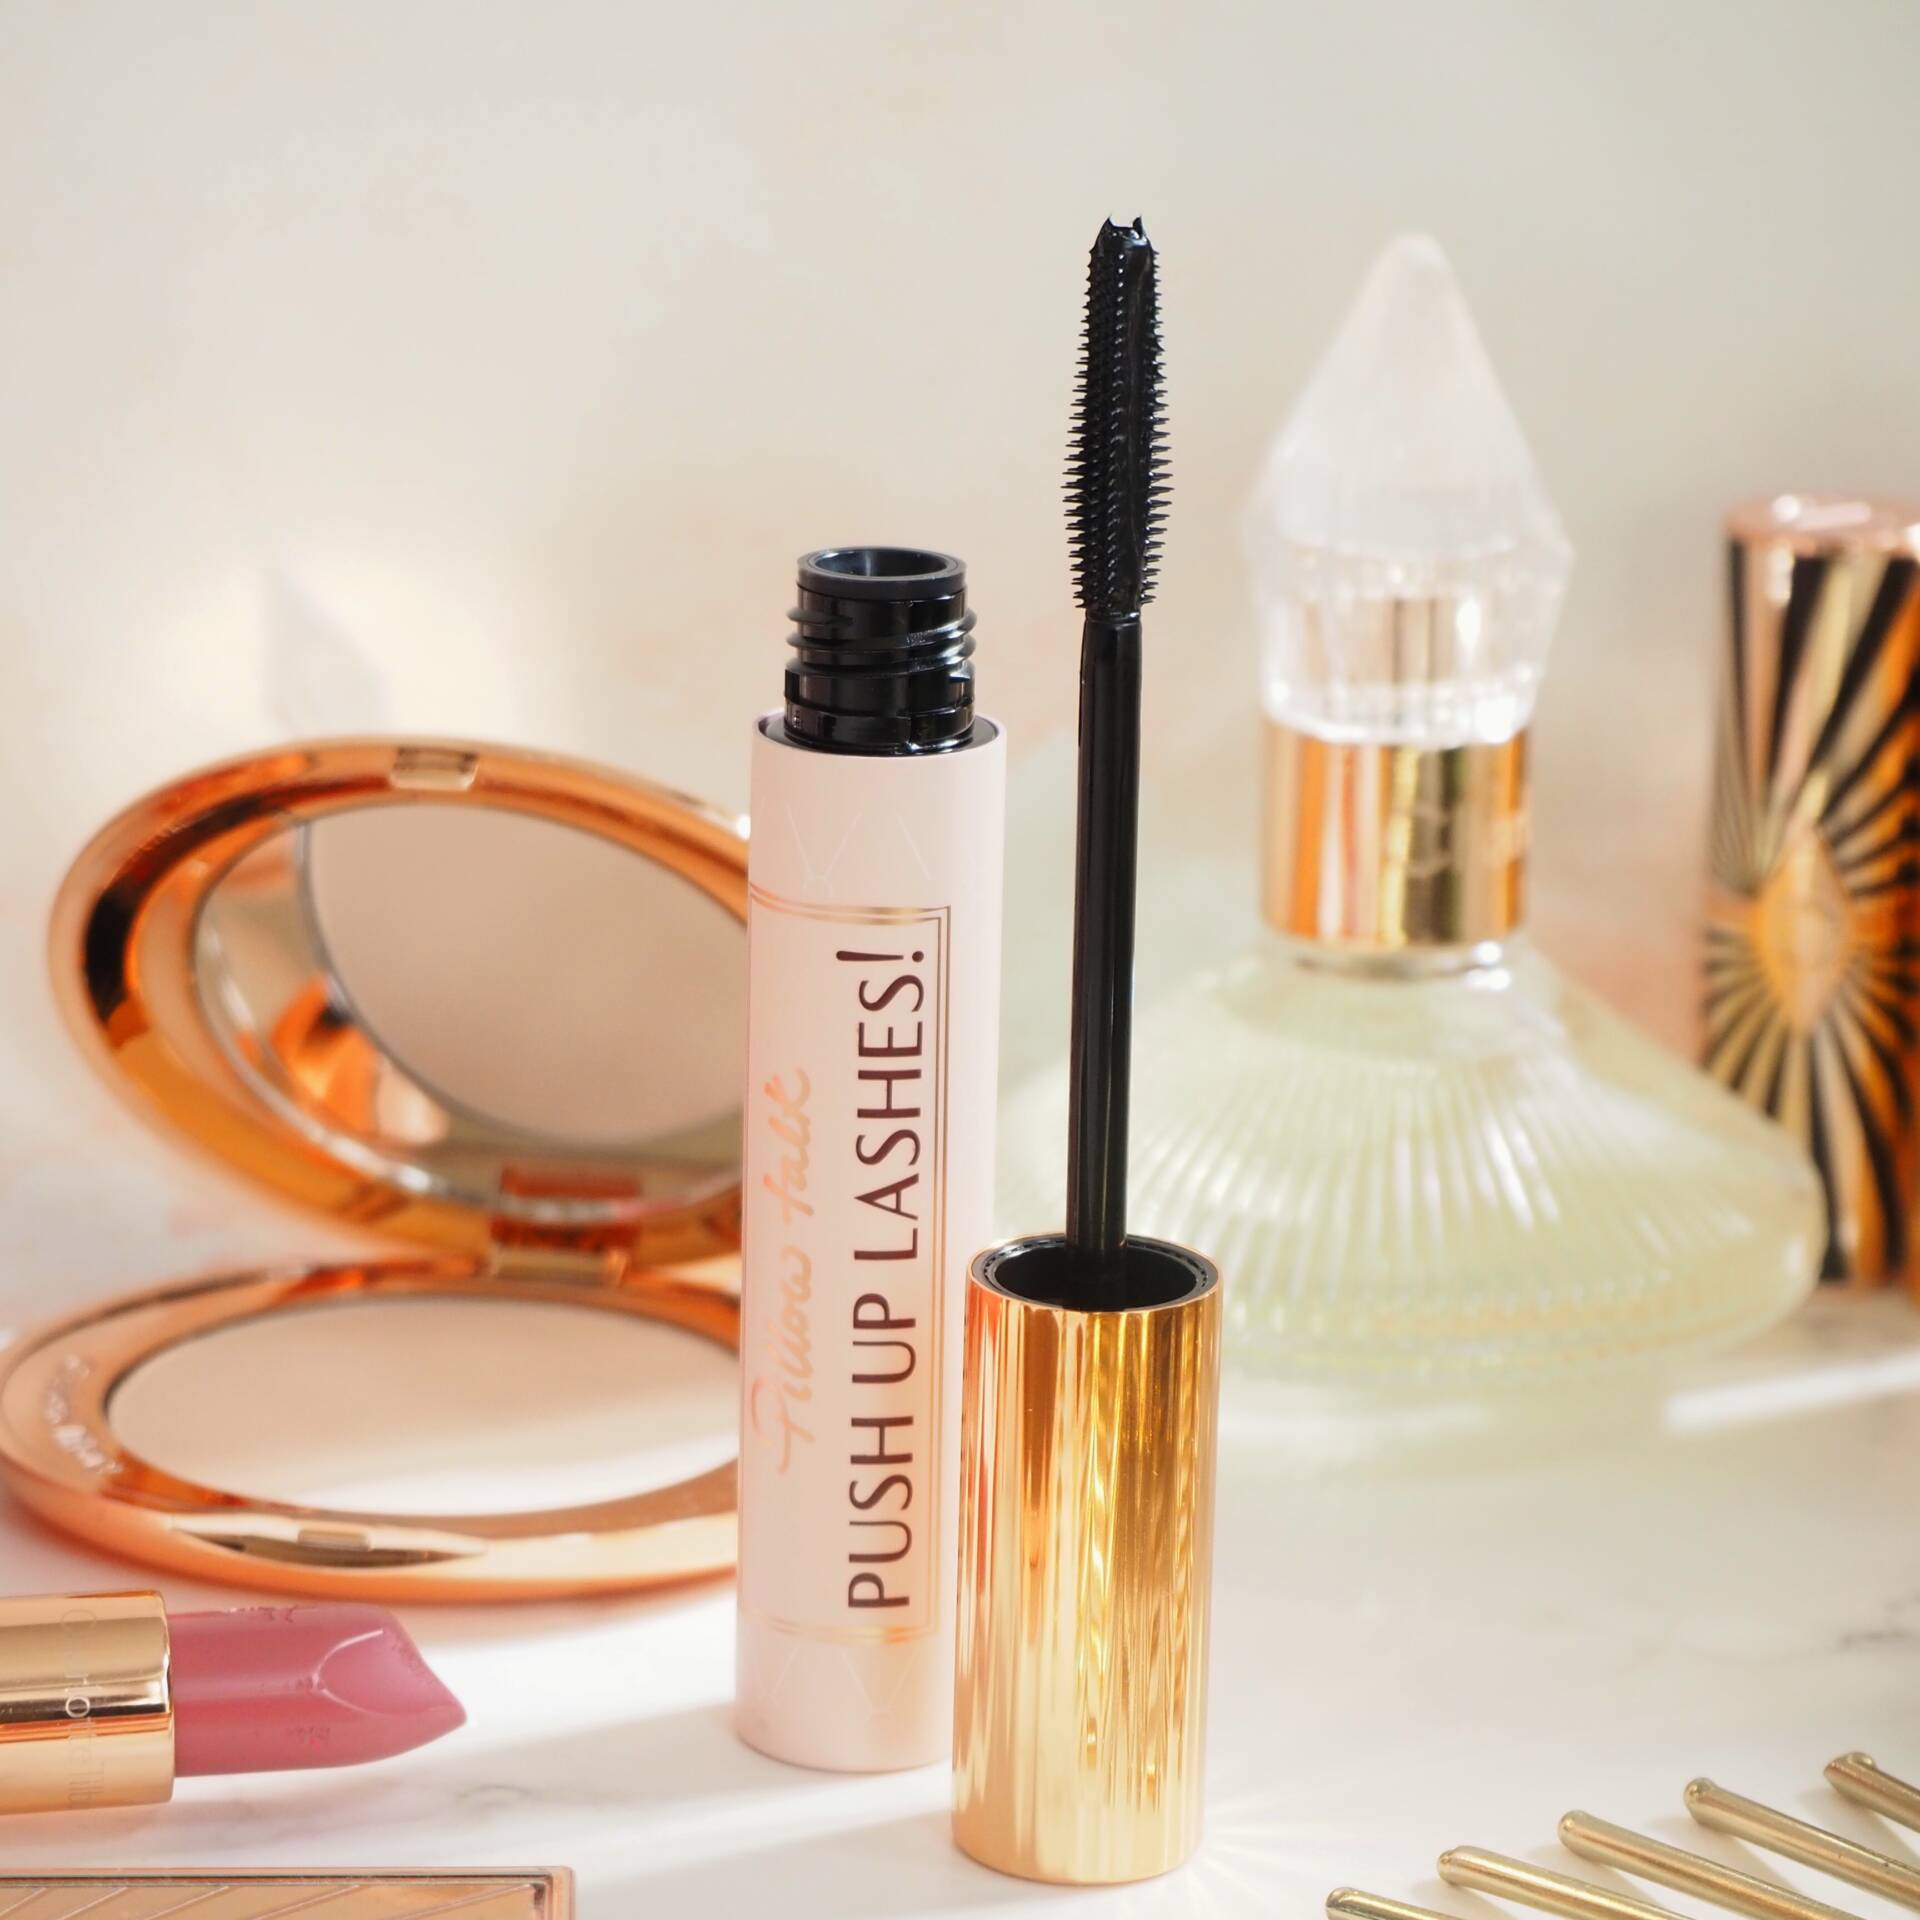 Charlotte-Tilbury-Pillow-Talk-Push-Up-Lashes-Mascara-Review-and-Comparison